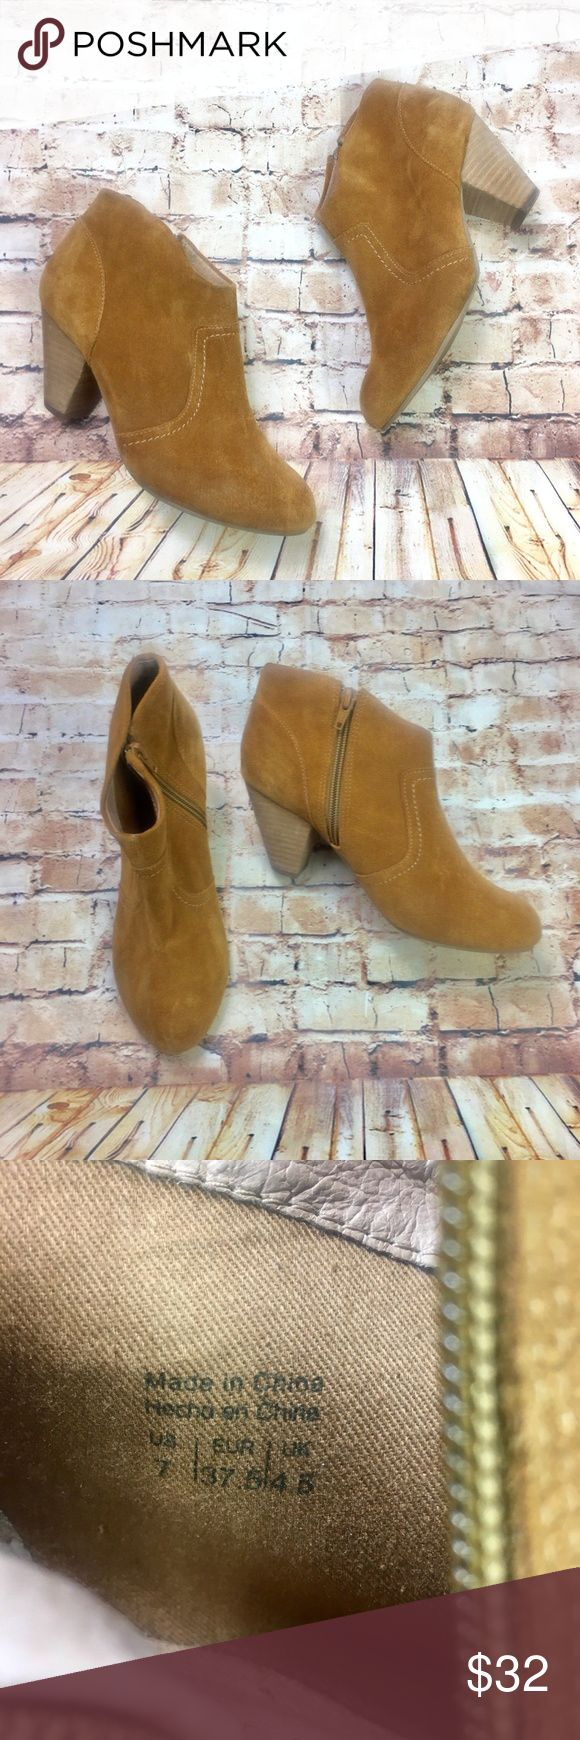 [Aldo] Tan Suede Chunky Heel Ankle Boots These are a great pair casual neutral ankle booties from Aldo. In a cognac tan faux suede these ankle boots pair perfectly with jeans for a casual look or even a floaty dress for a night out. Normal signs of wear and some slight discoloration on the top of the booties as shown. Aldo Shoes Ankle Boots & Booties